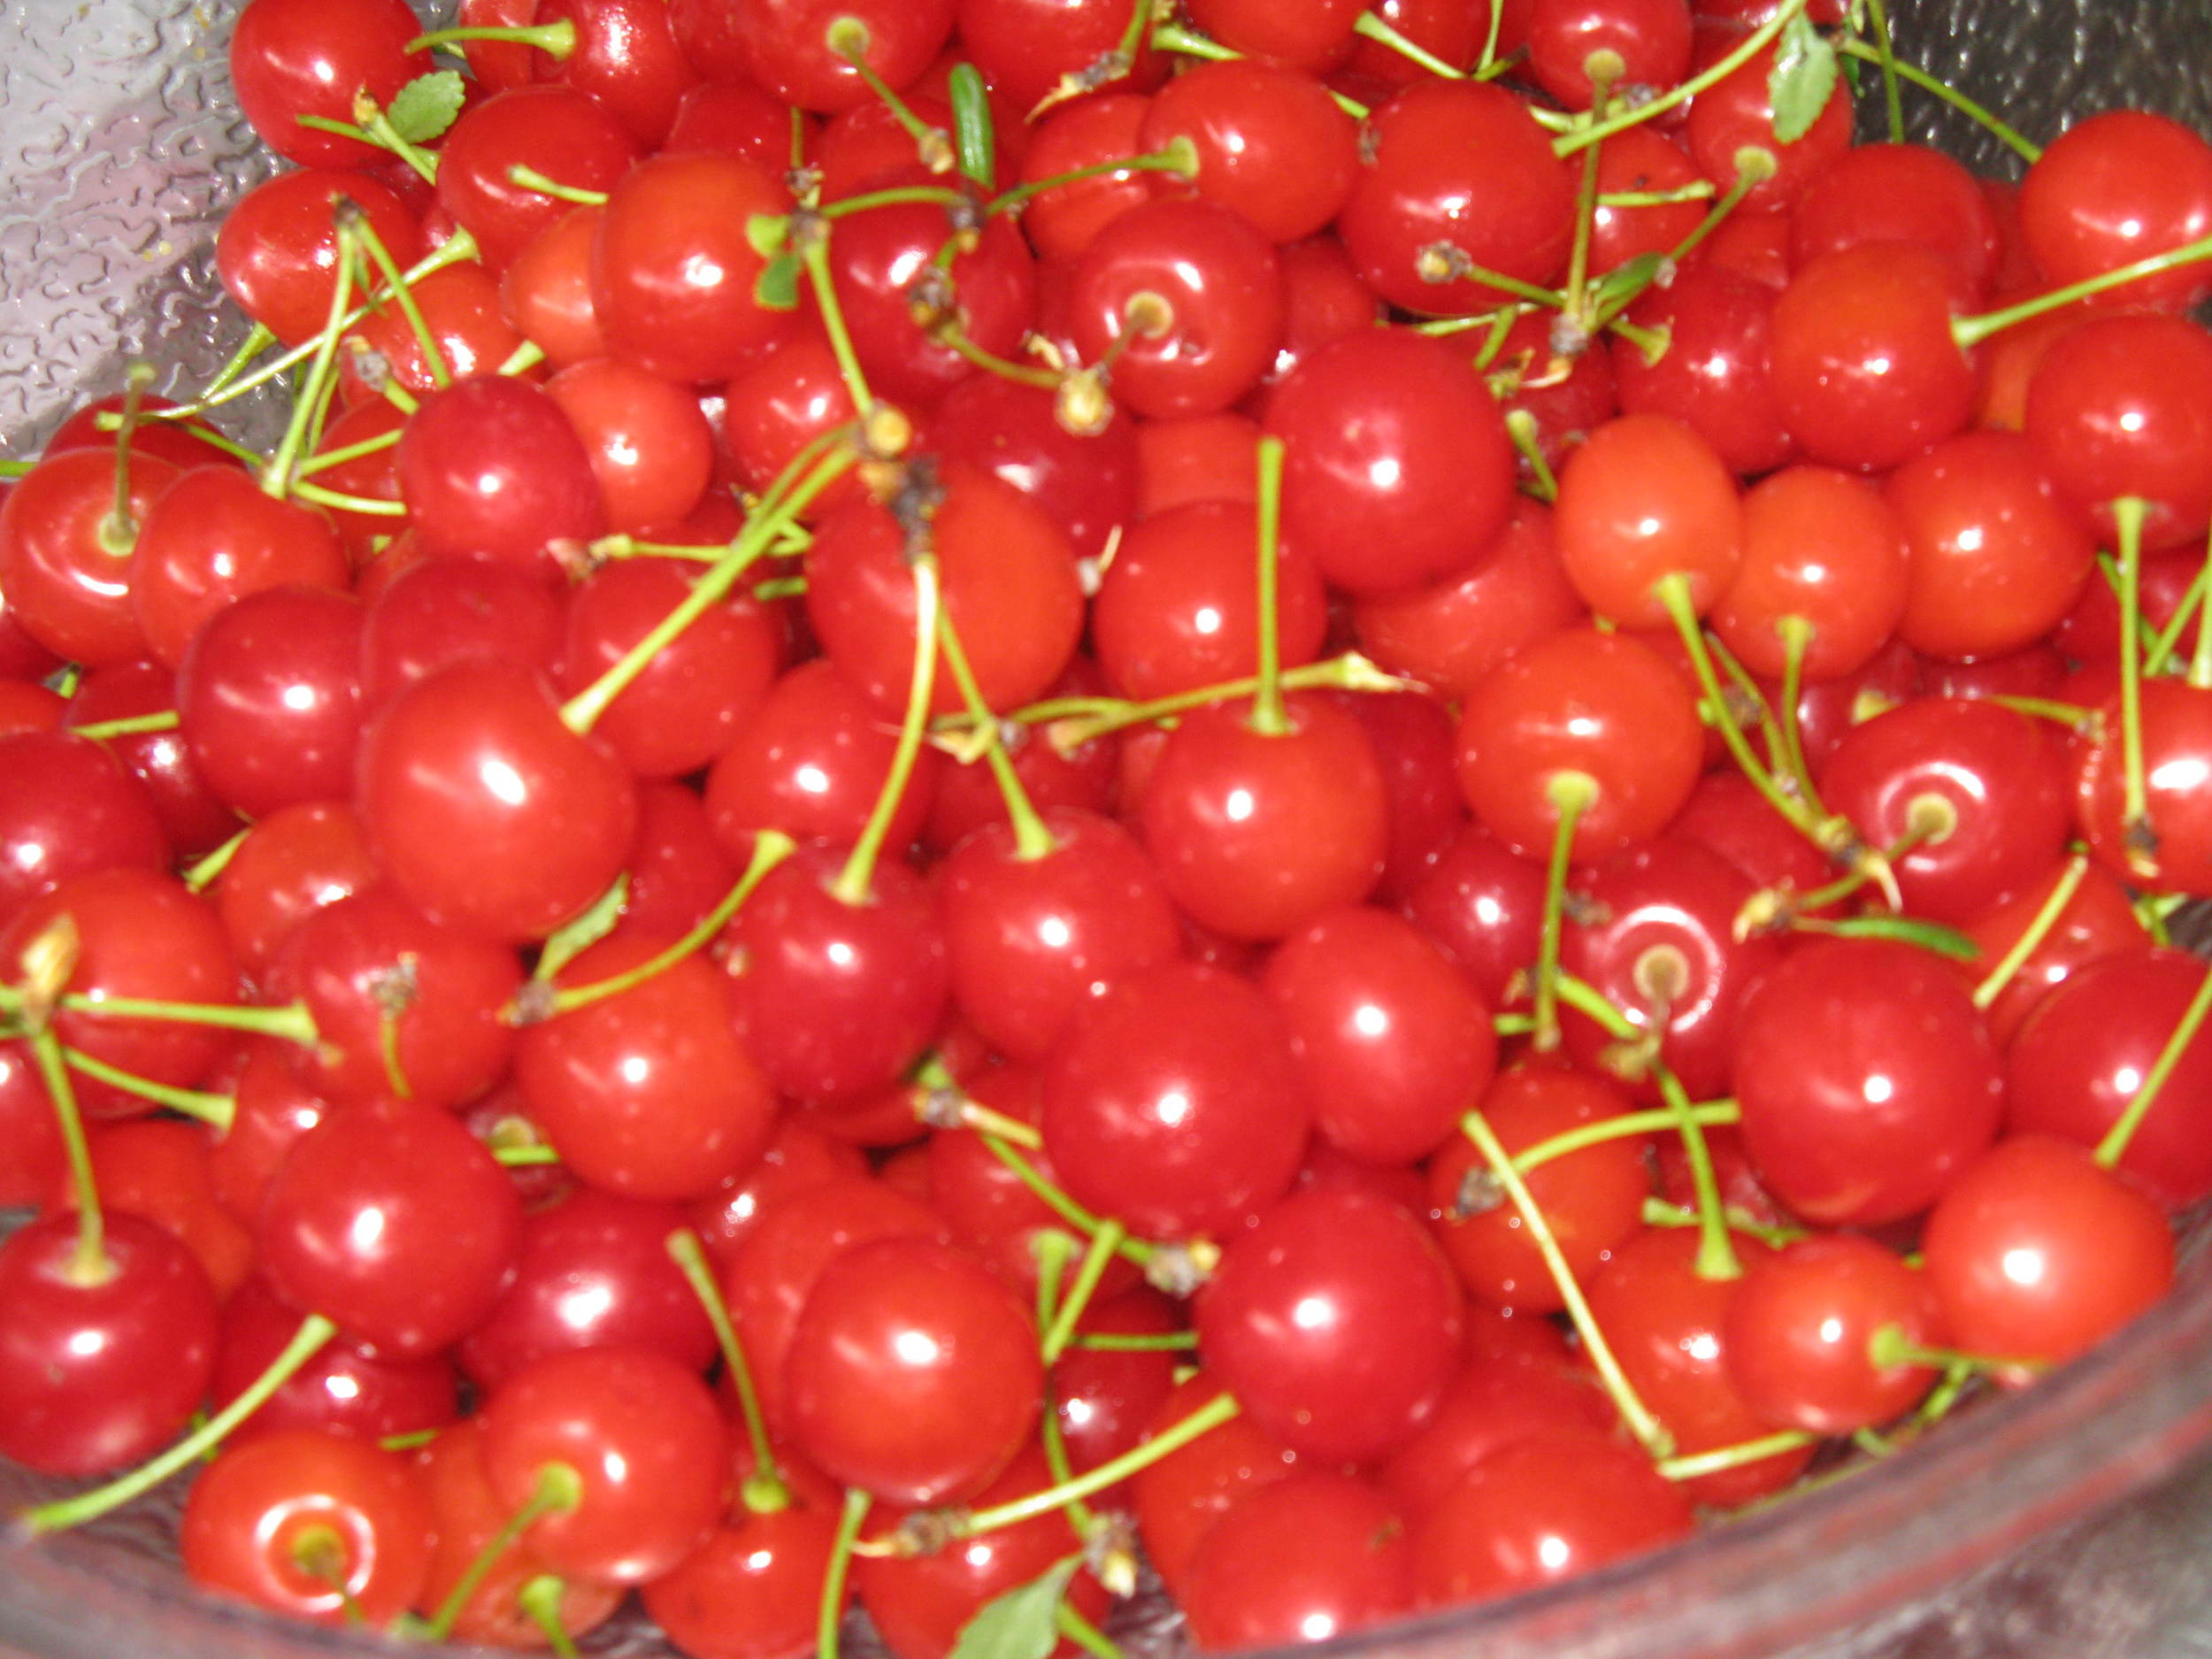 Our Sour Cherries